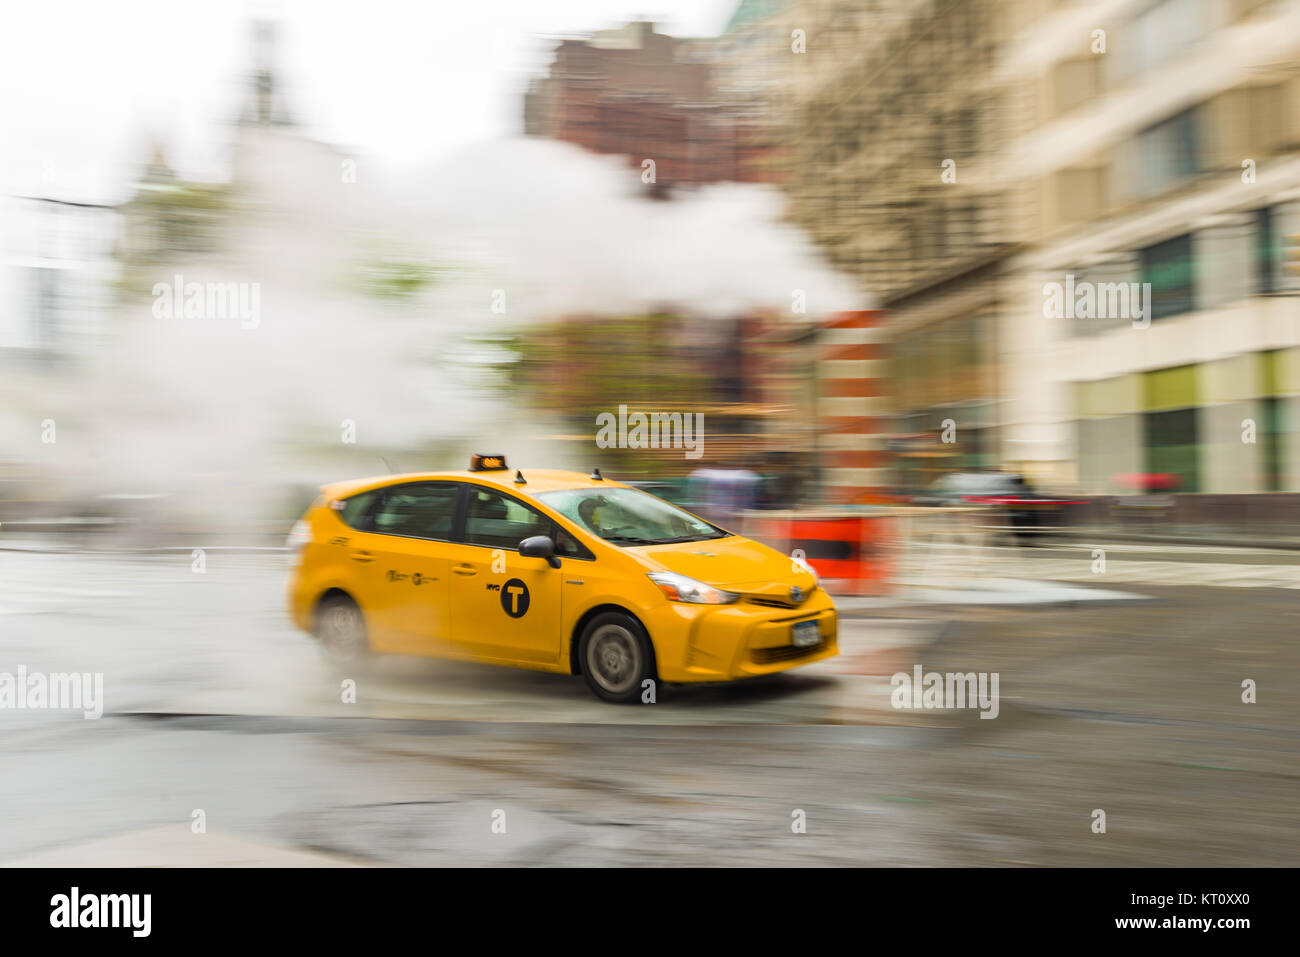 A panning shot of a yellow taxi cab driving along a street in lower Manhattan, New York, USA - Stock Image